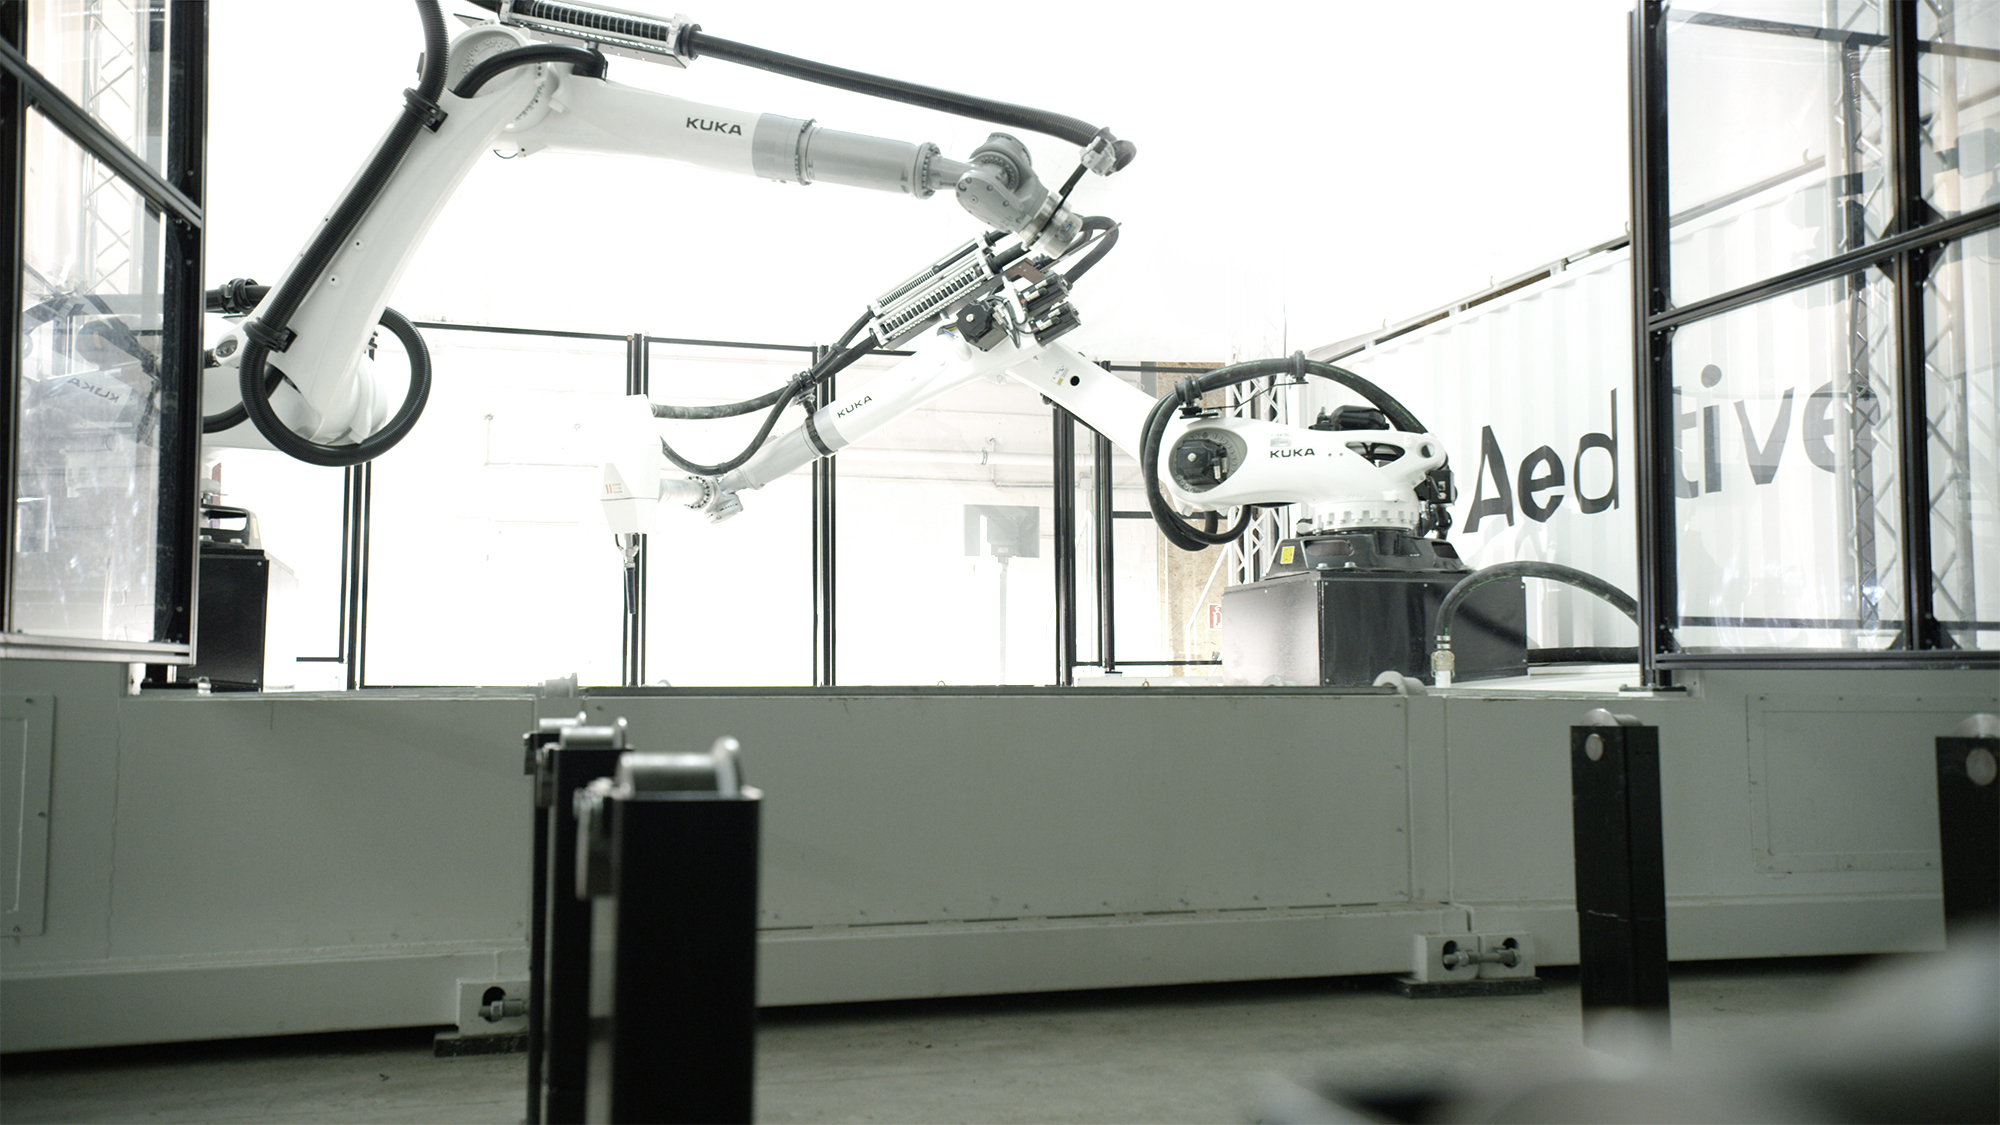 Aeditive Concrete Aeditor 3d printer externel perspective robots